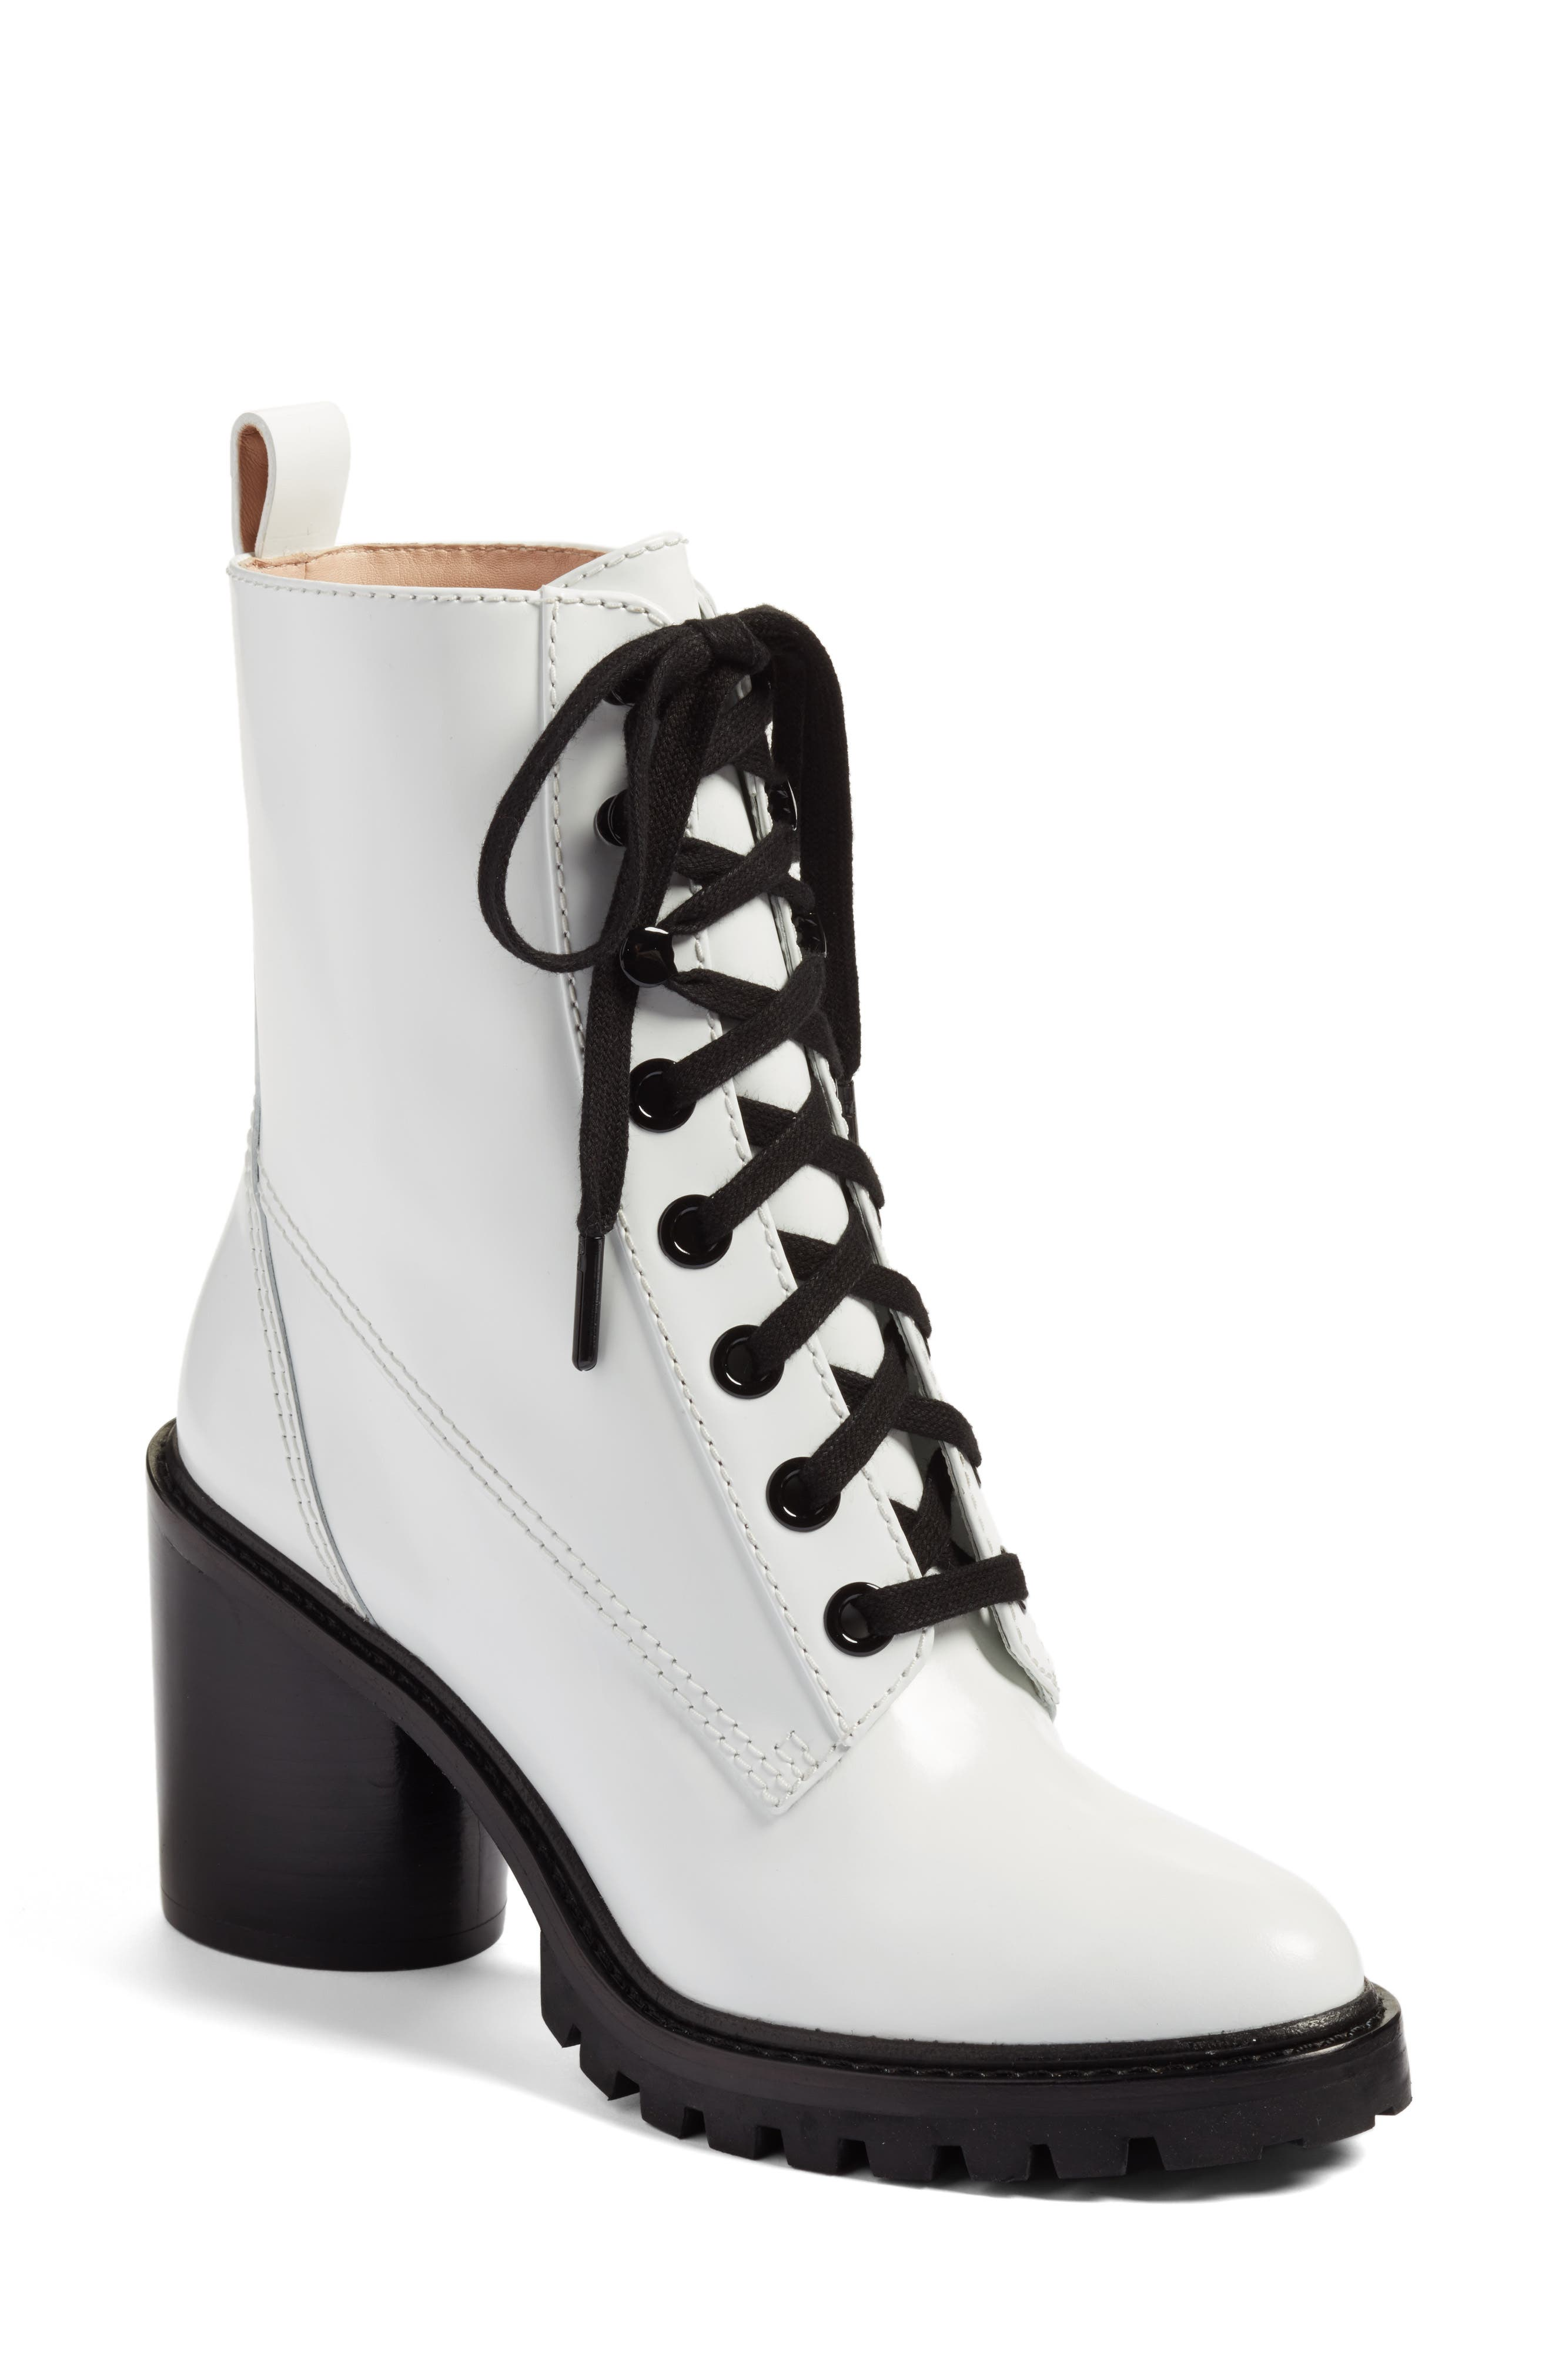 MARC JACOBS Ryder Block Heel Boot